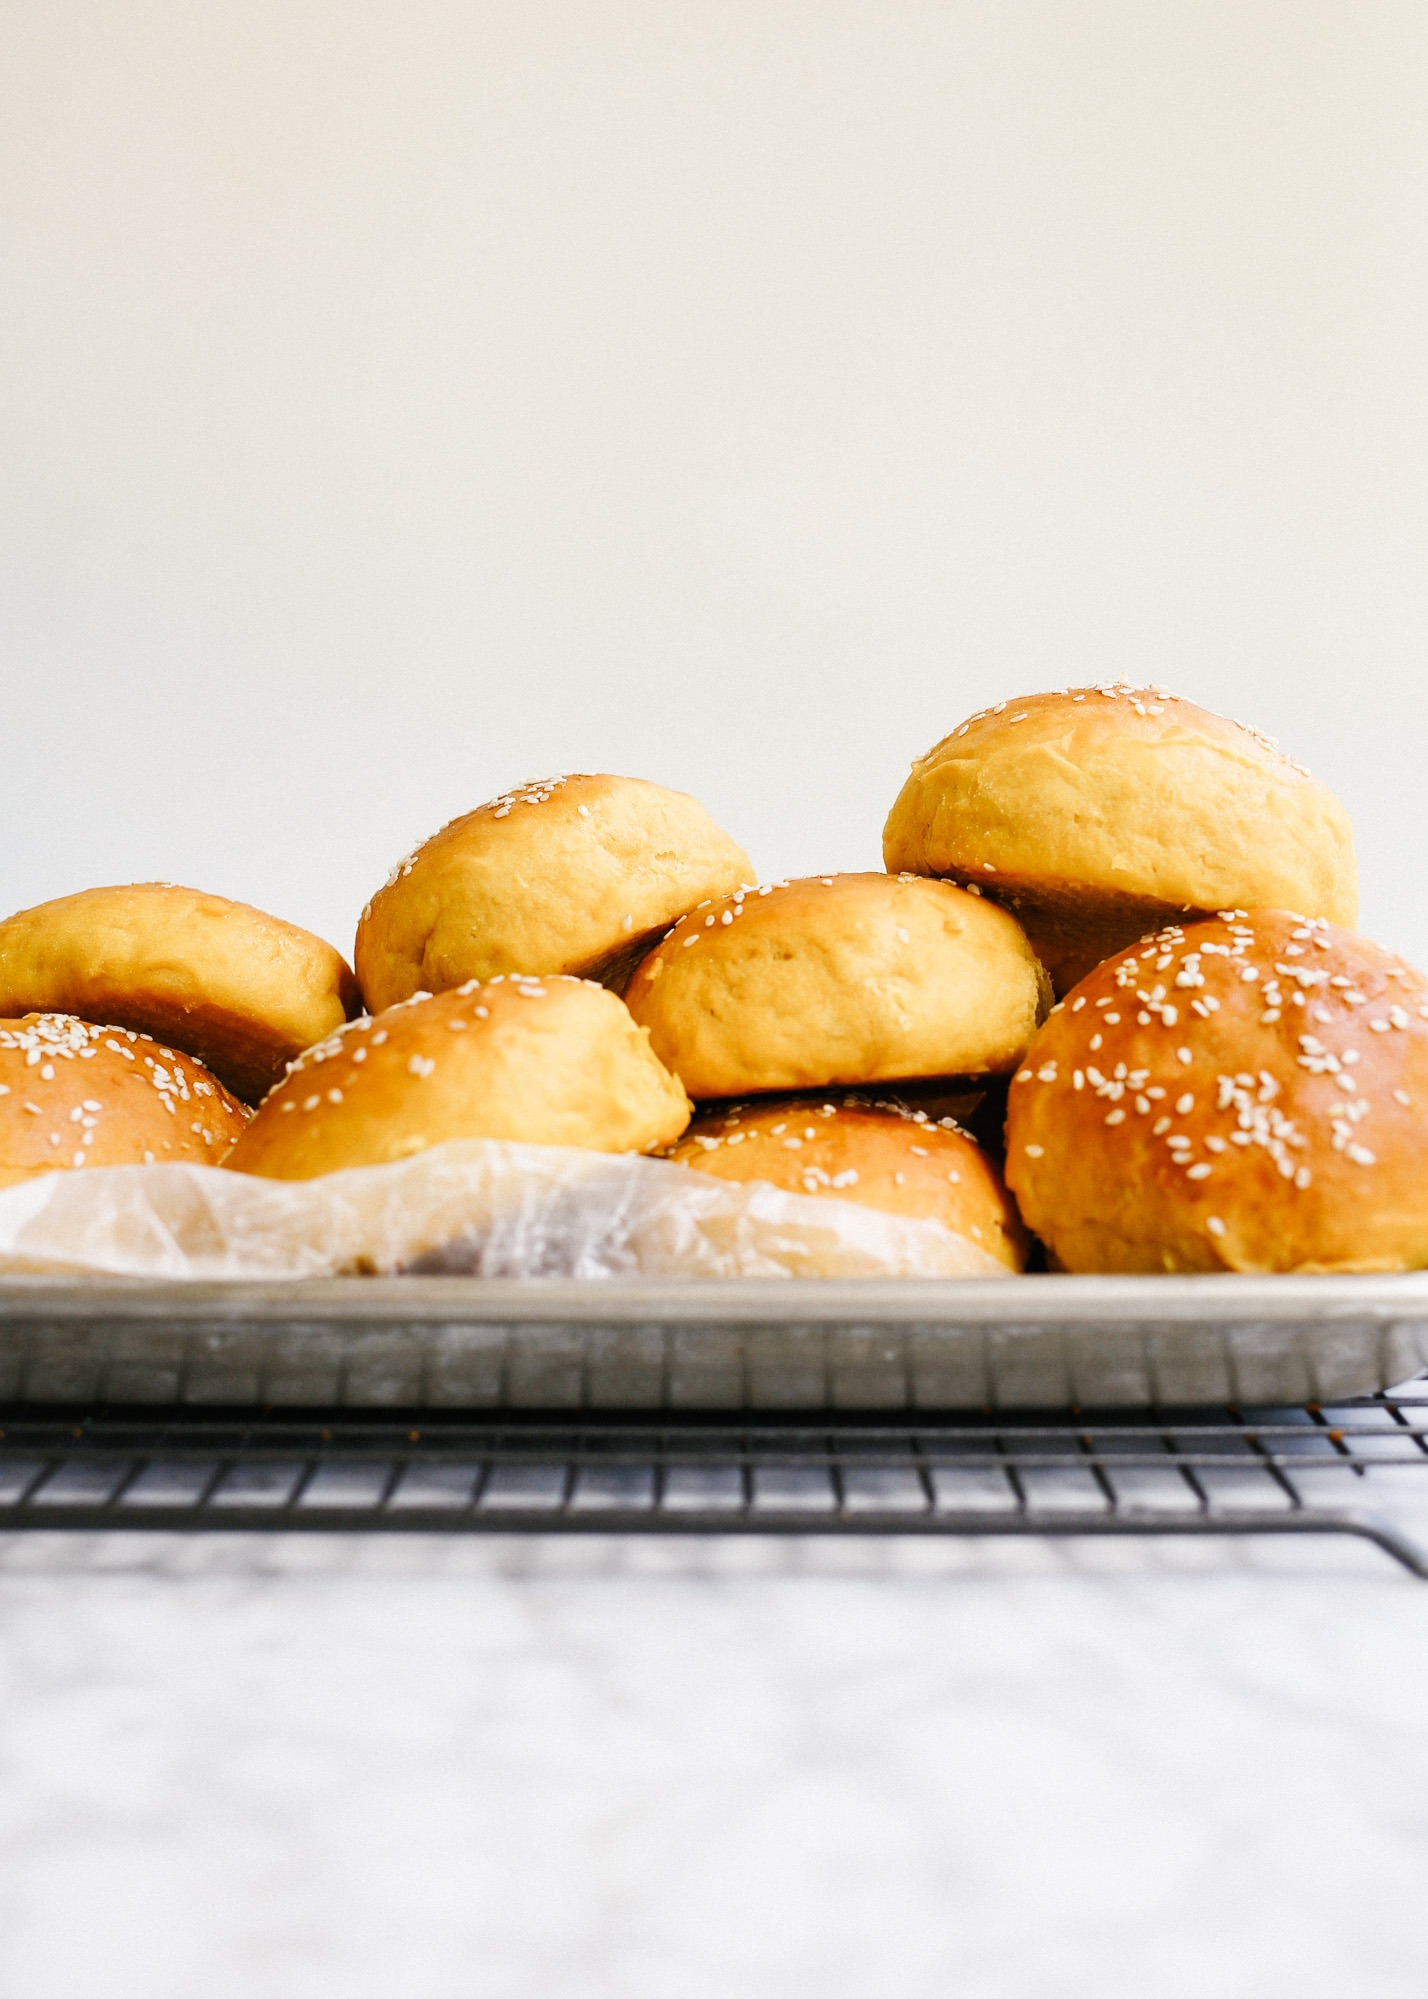 Sweet Potato Buns by Wood and Spoon blog. These are fluffy potato hamburger buns using mashed sweet potato. They are thick and tender and would be terrific with burgers, barbecue, or Thanksgiving leftover sandwiches! Find out how to make this simple homemade yeast bread rolls on thewoodandspoon.com